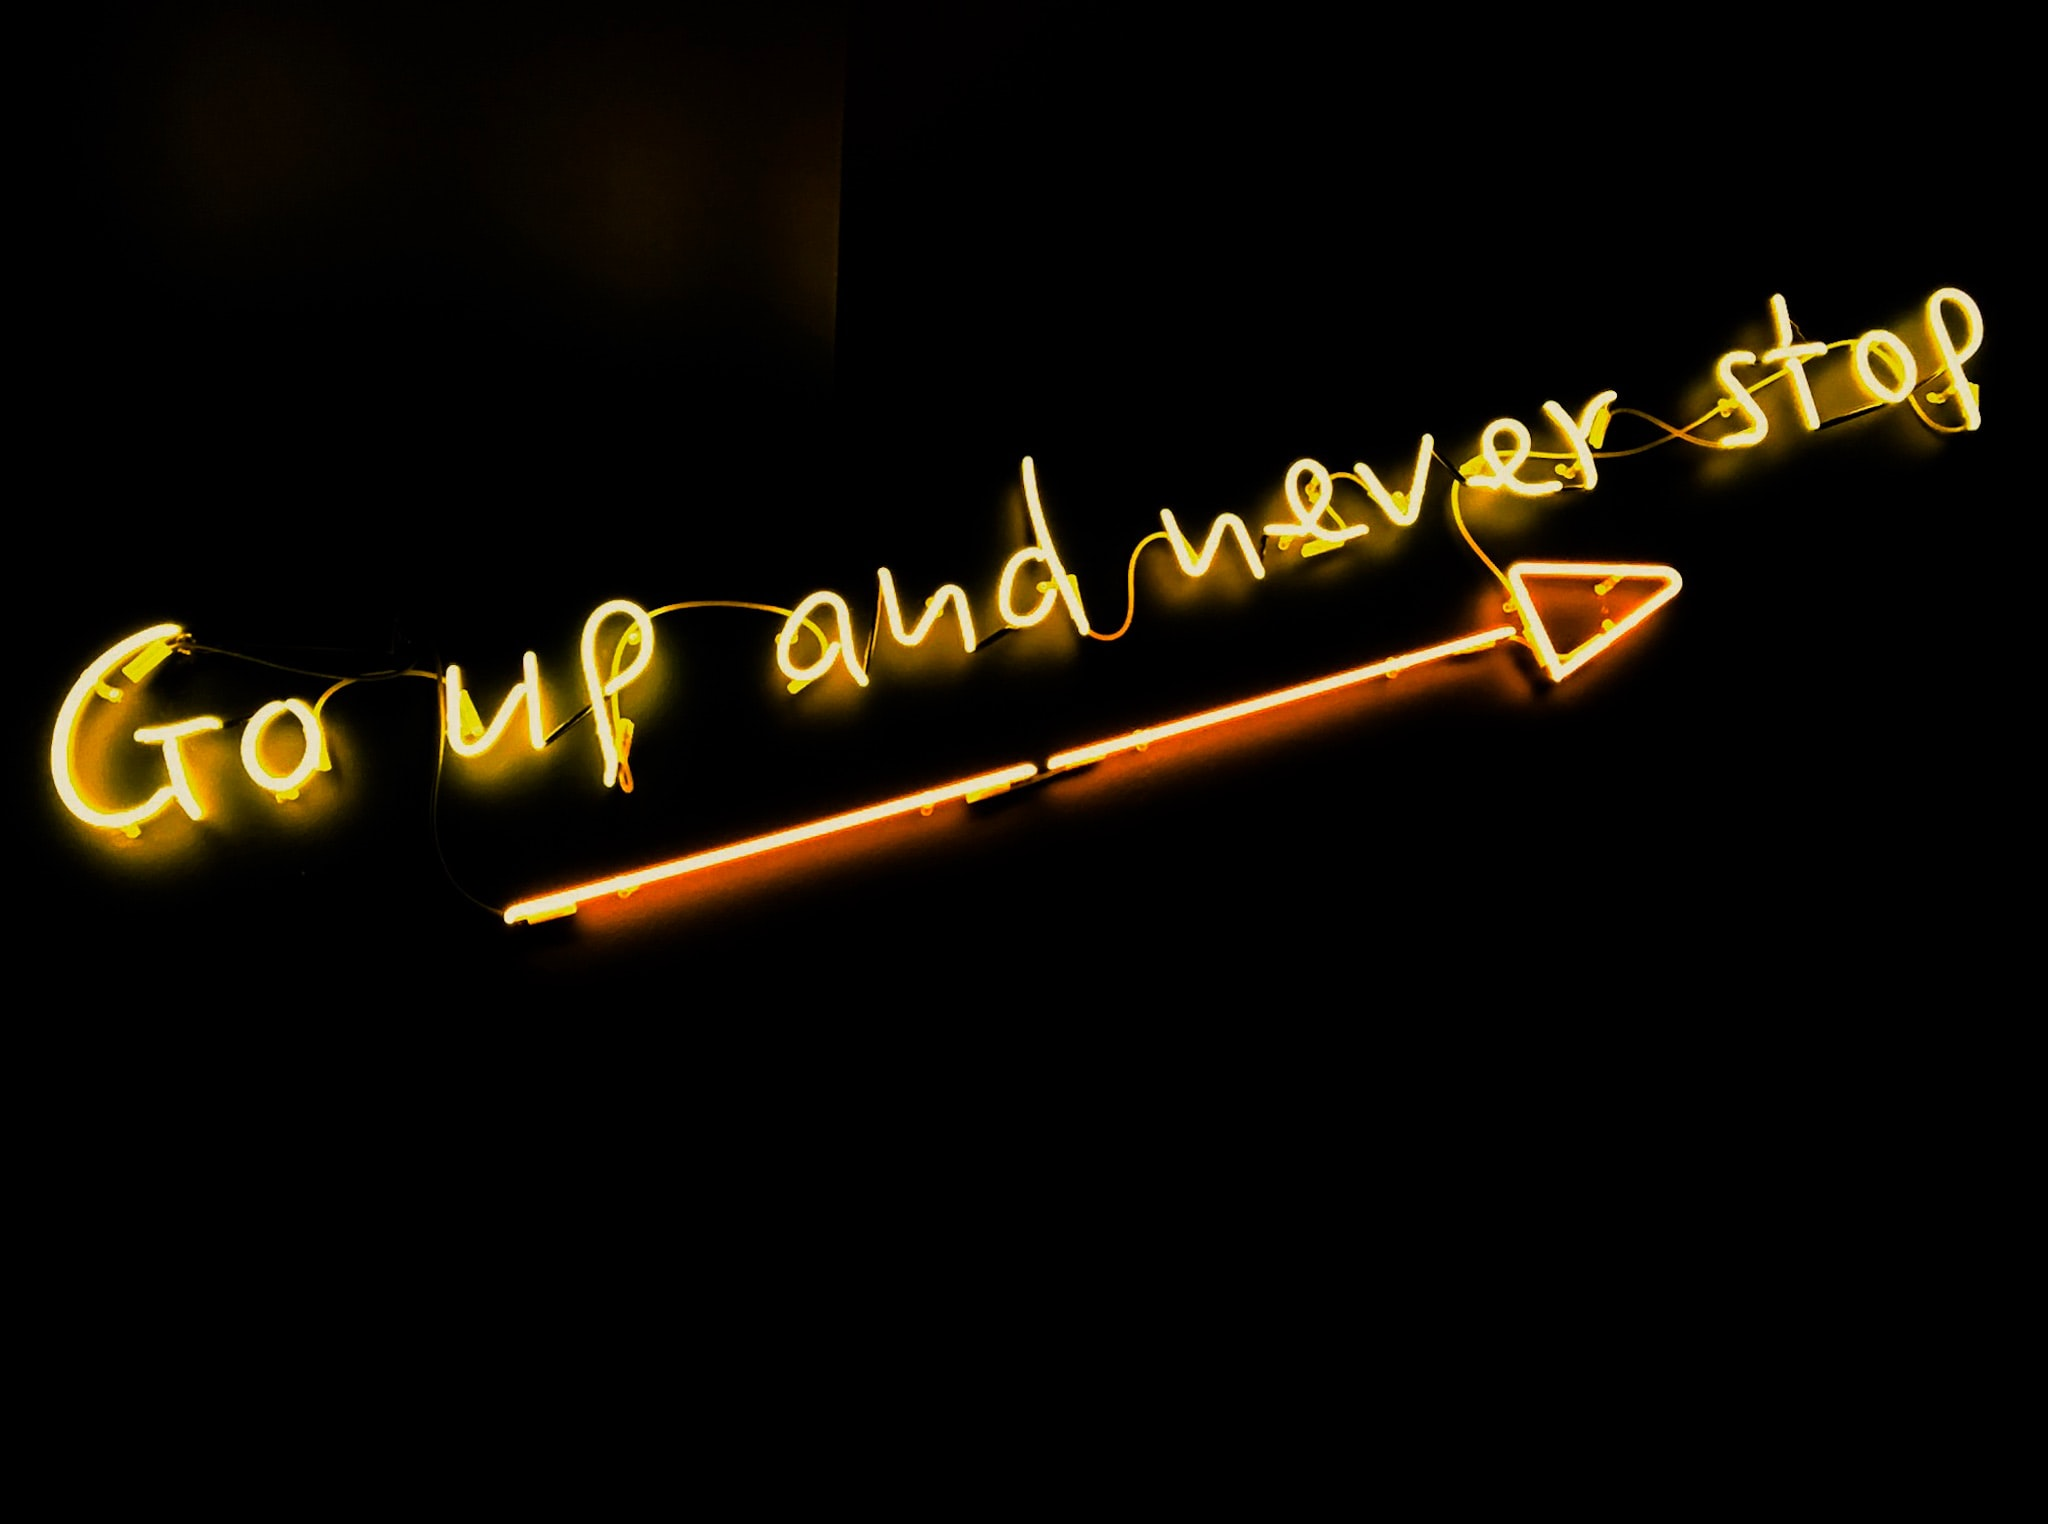 neon sign with text